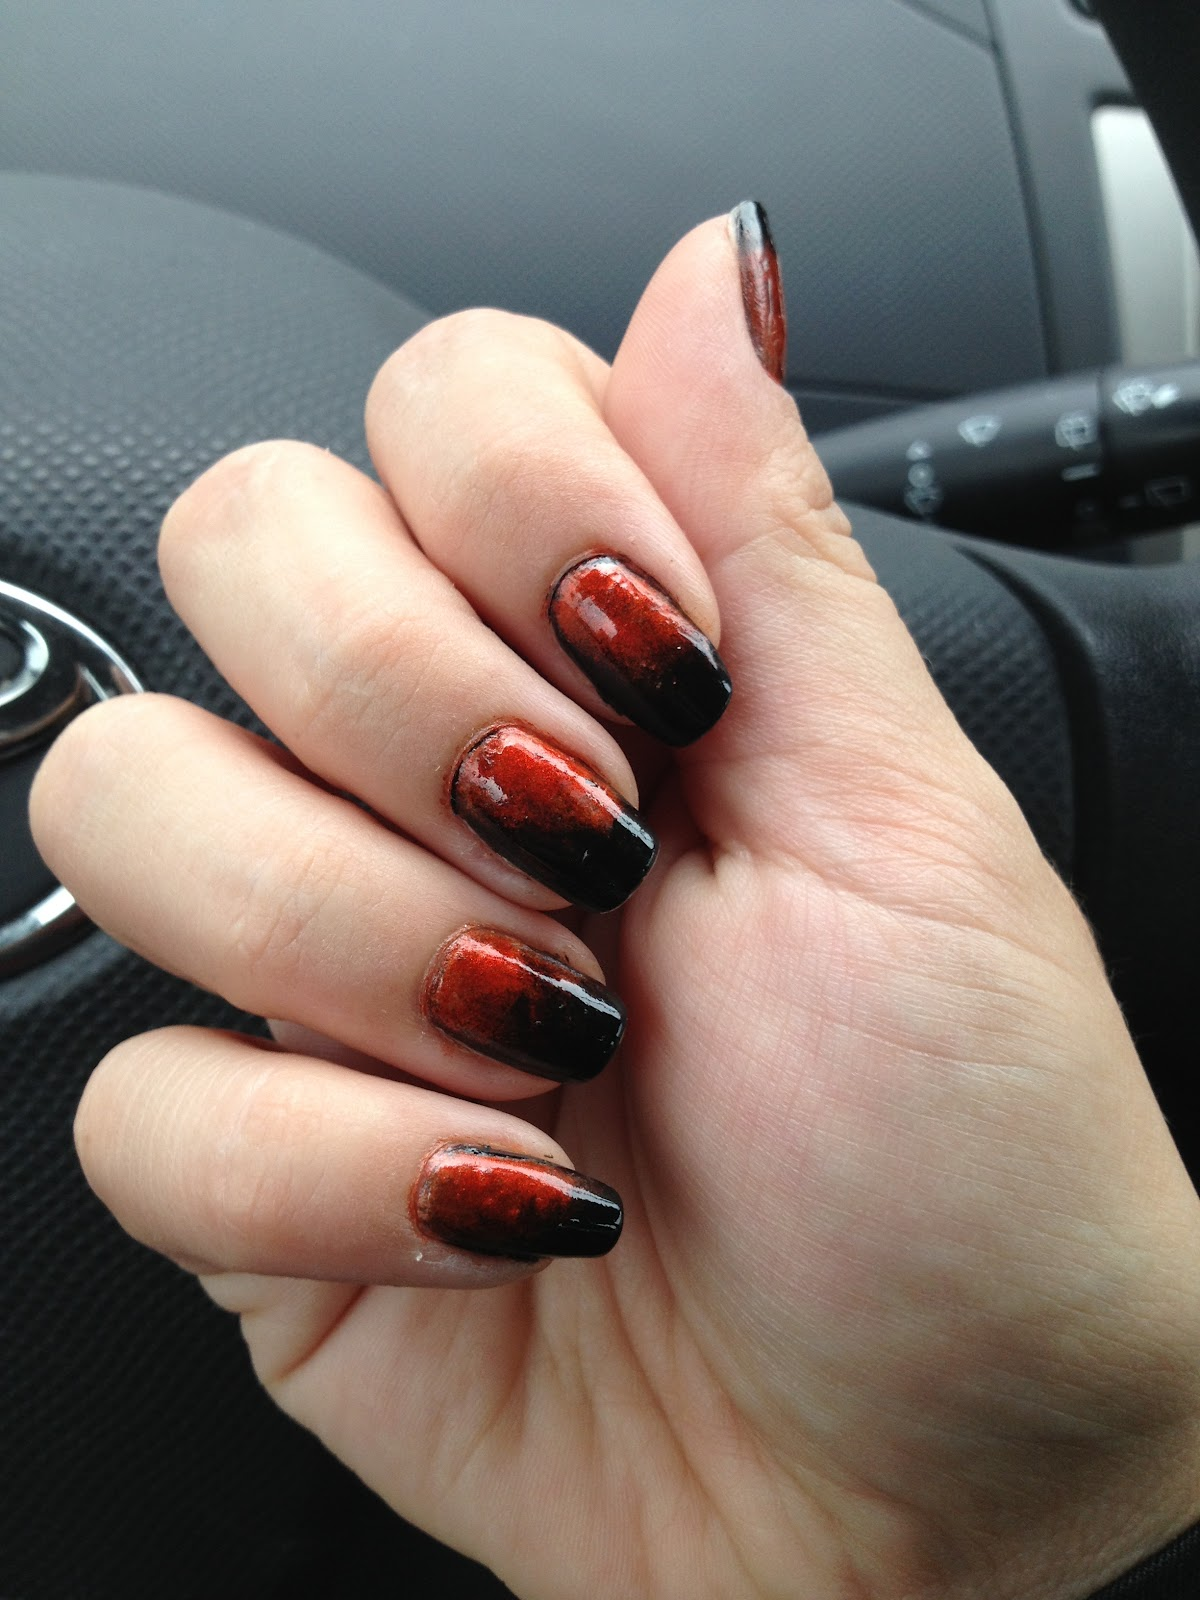 Wild Edgy Nails..: Orange to Black Ombre